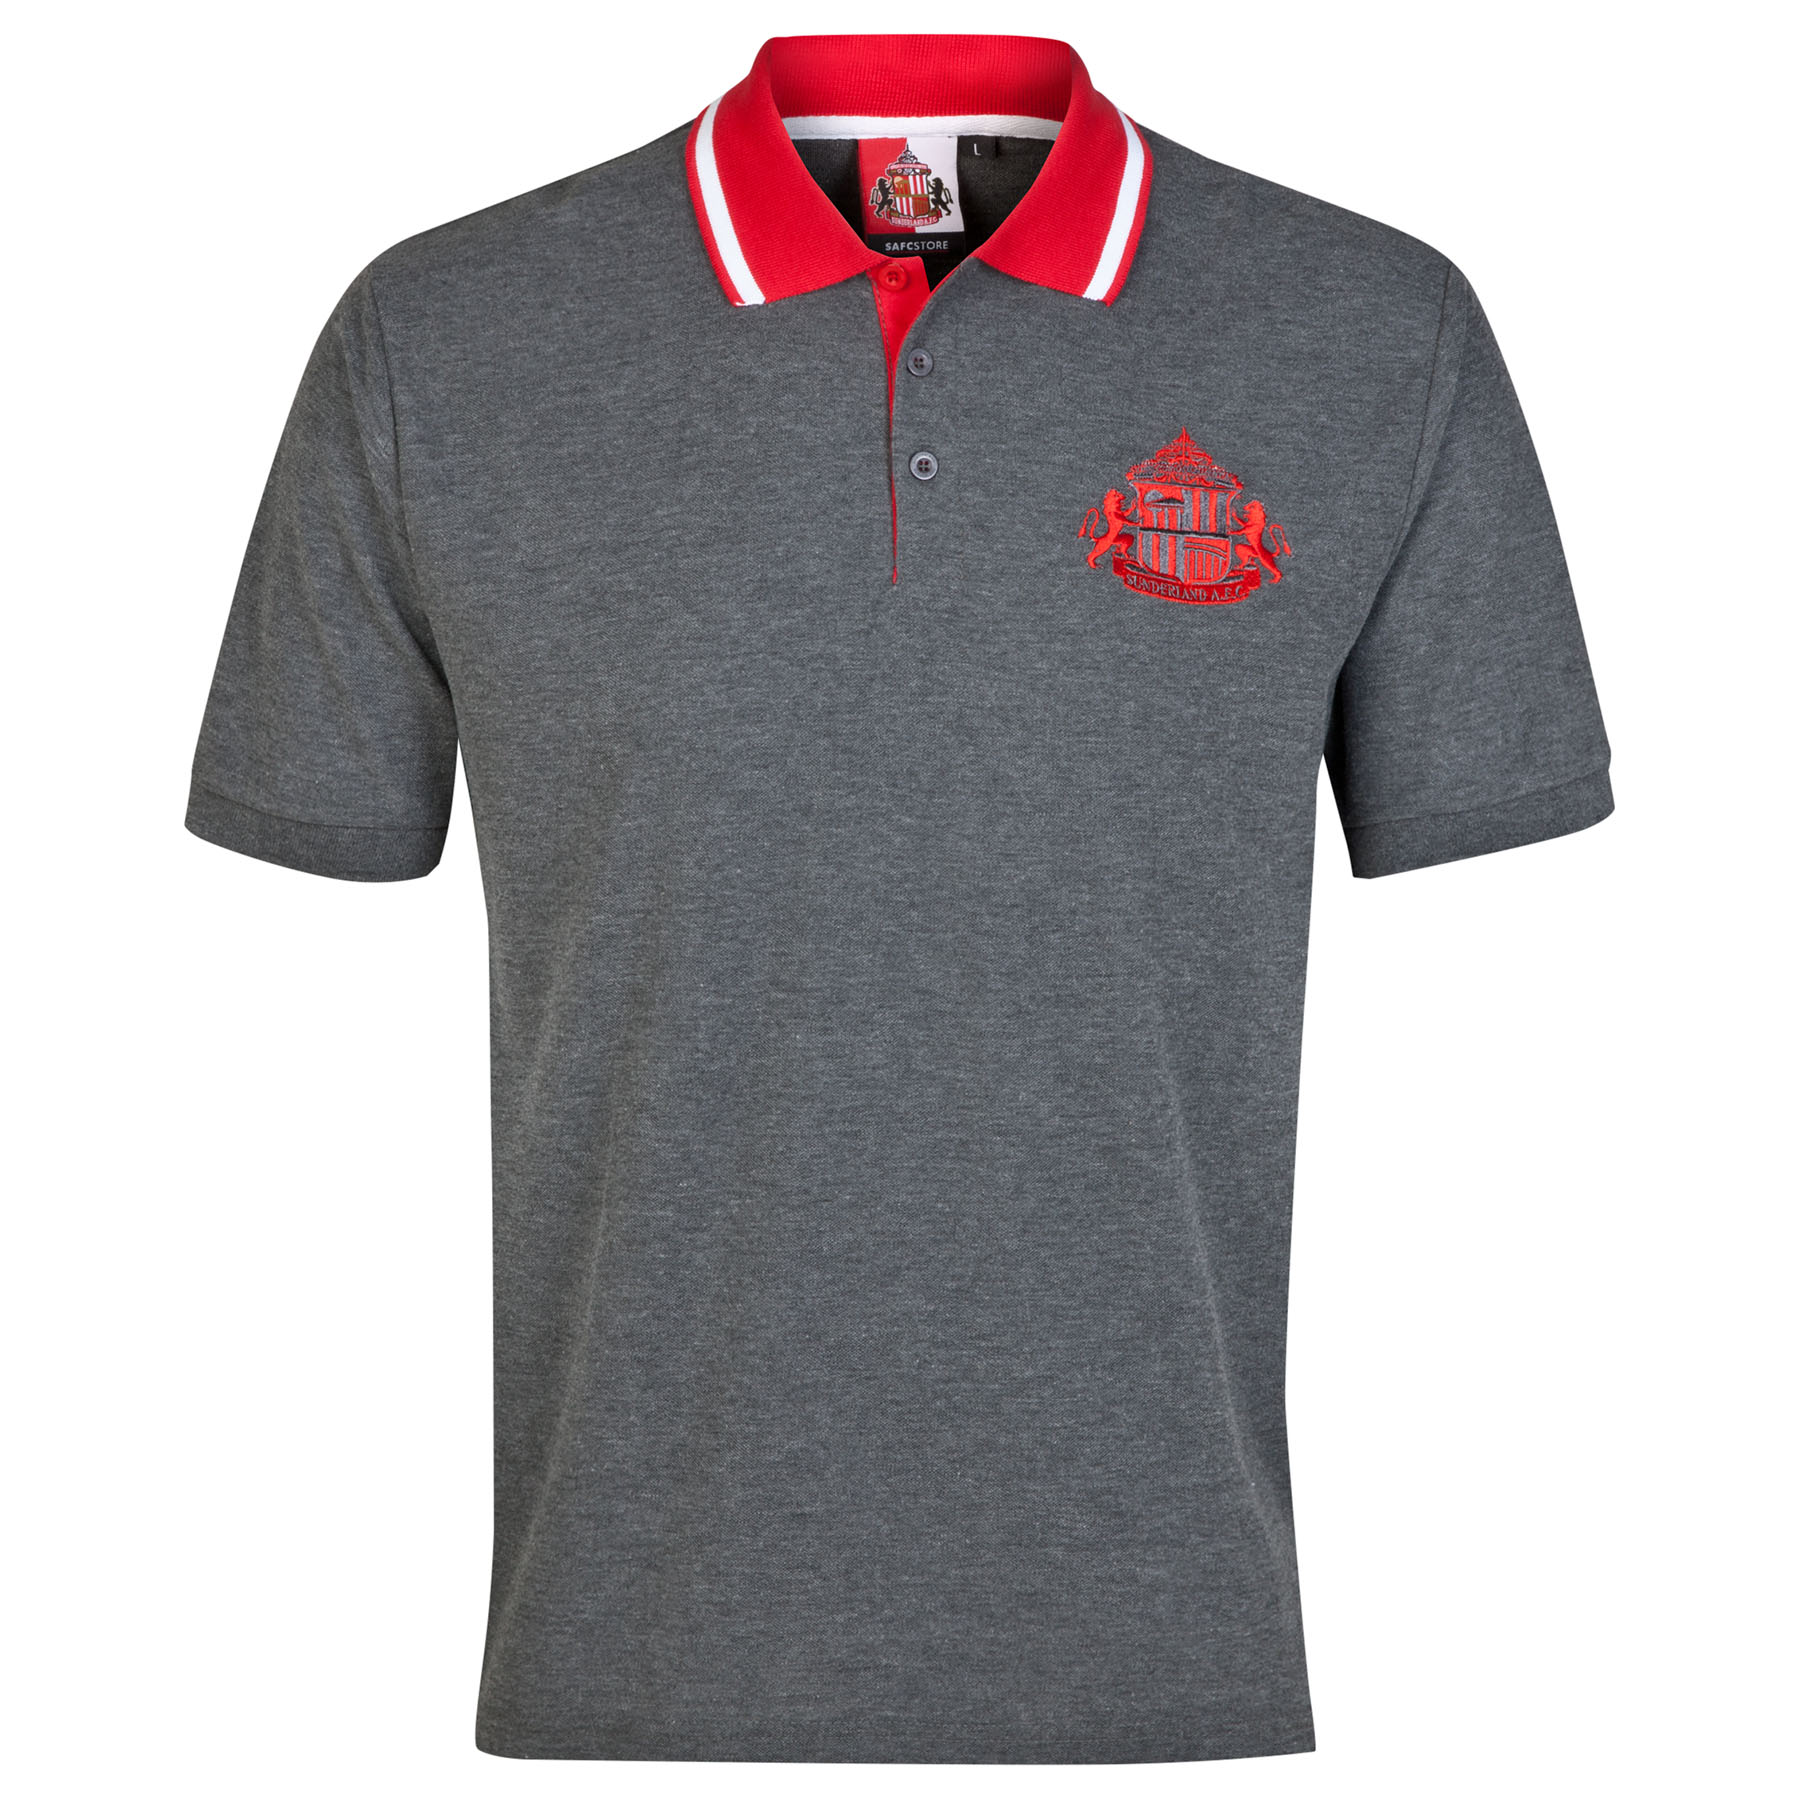 Sunderland Essential Polo Shirt - Vintage Marl-Older Boys